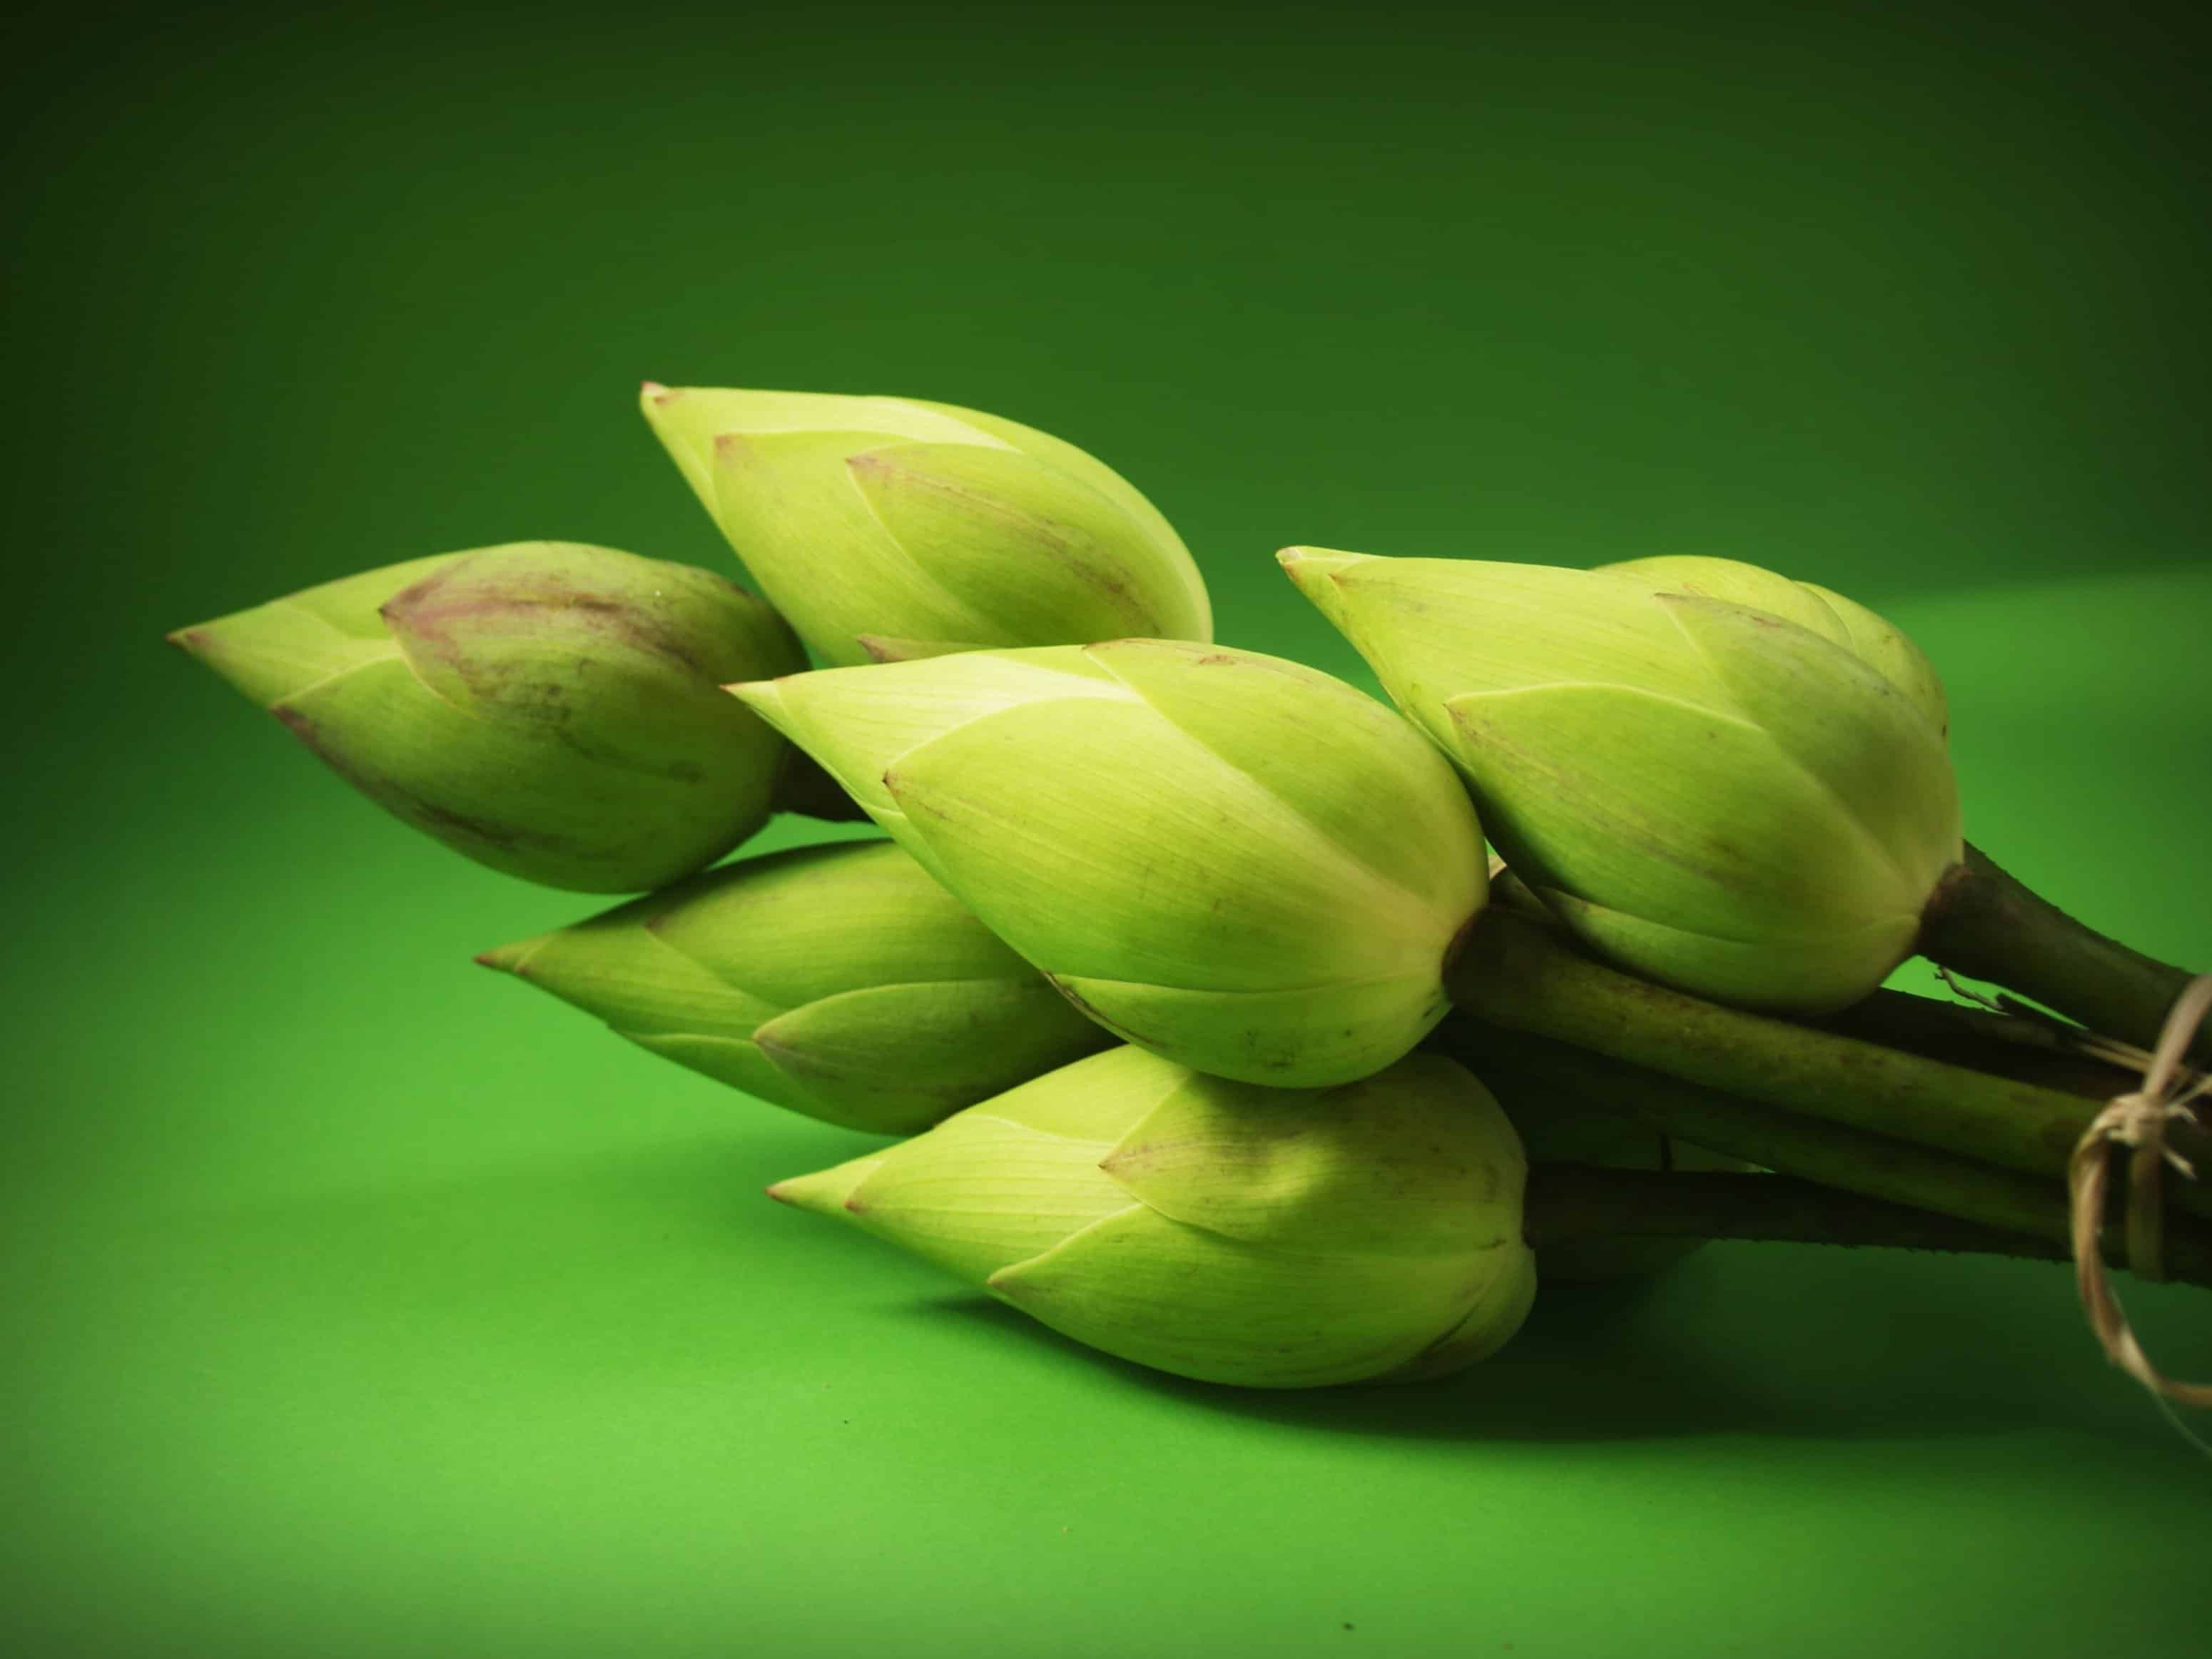 Free picture lotus flower bud leaf nature flora green wildflower lotus flower bud leaf nature flora green wildflower izmirmasajfo